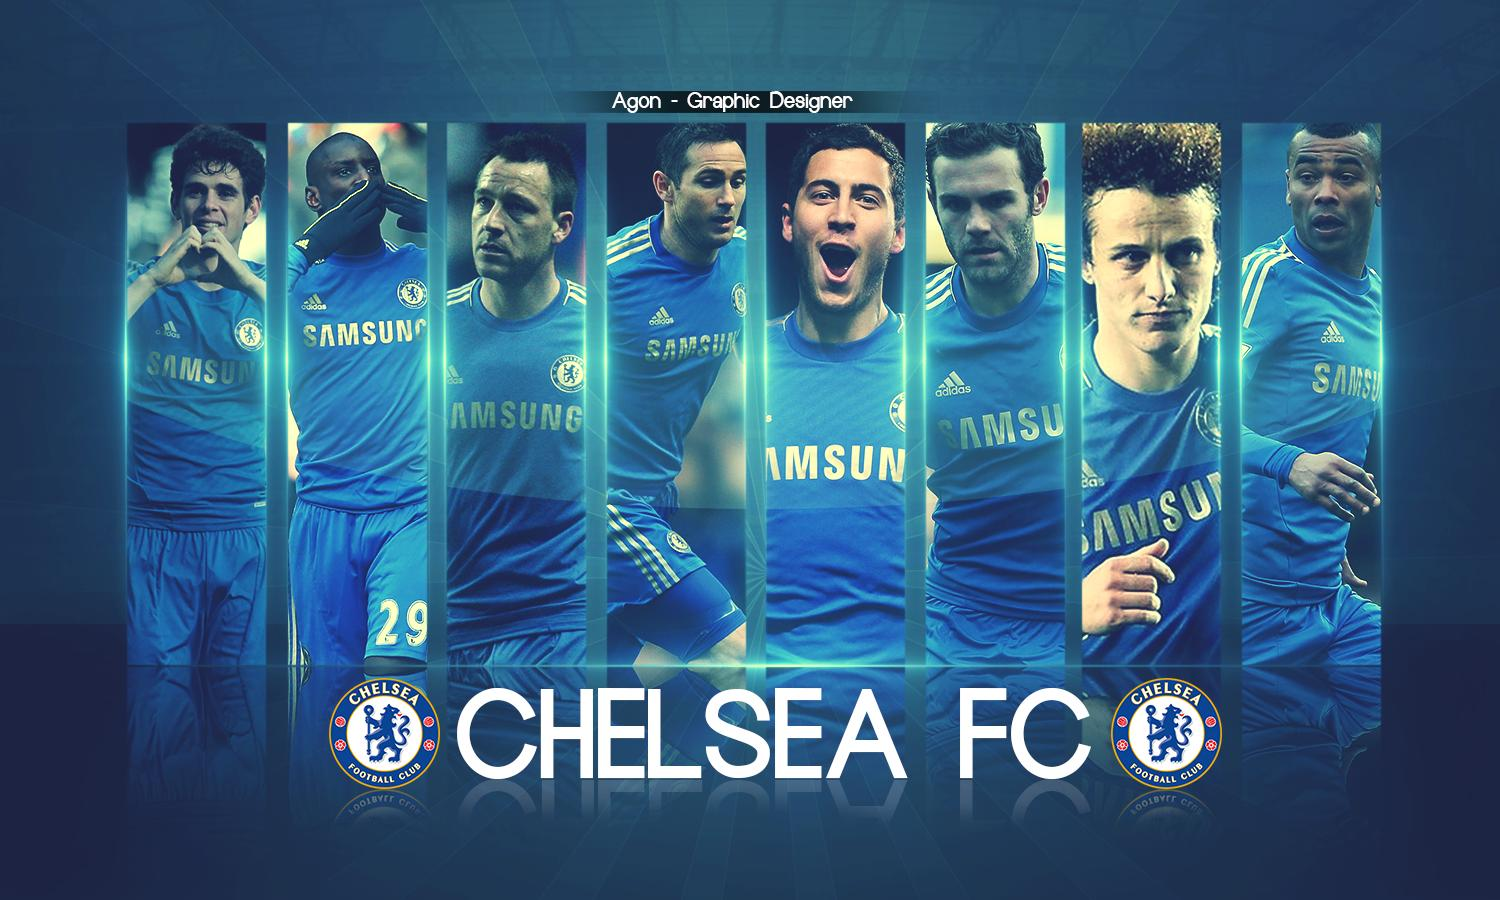 chelsea wallpapers  Tumblr 1500x900